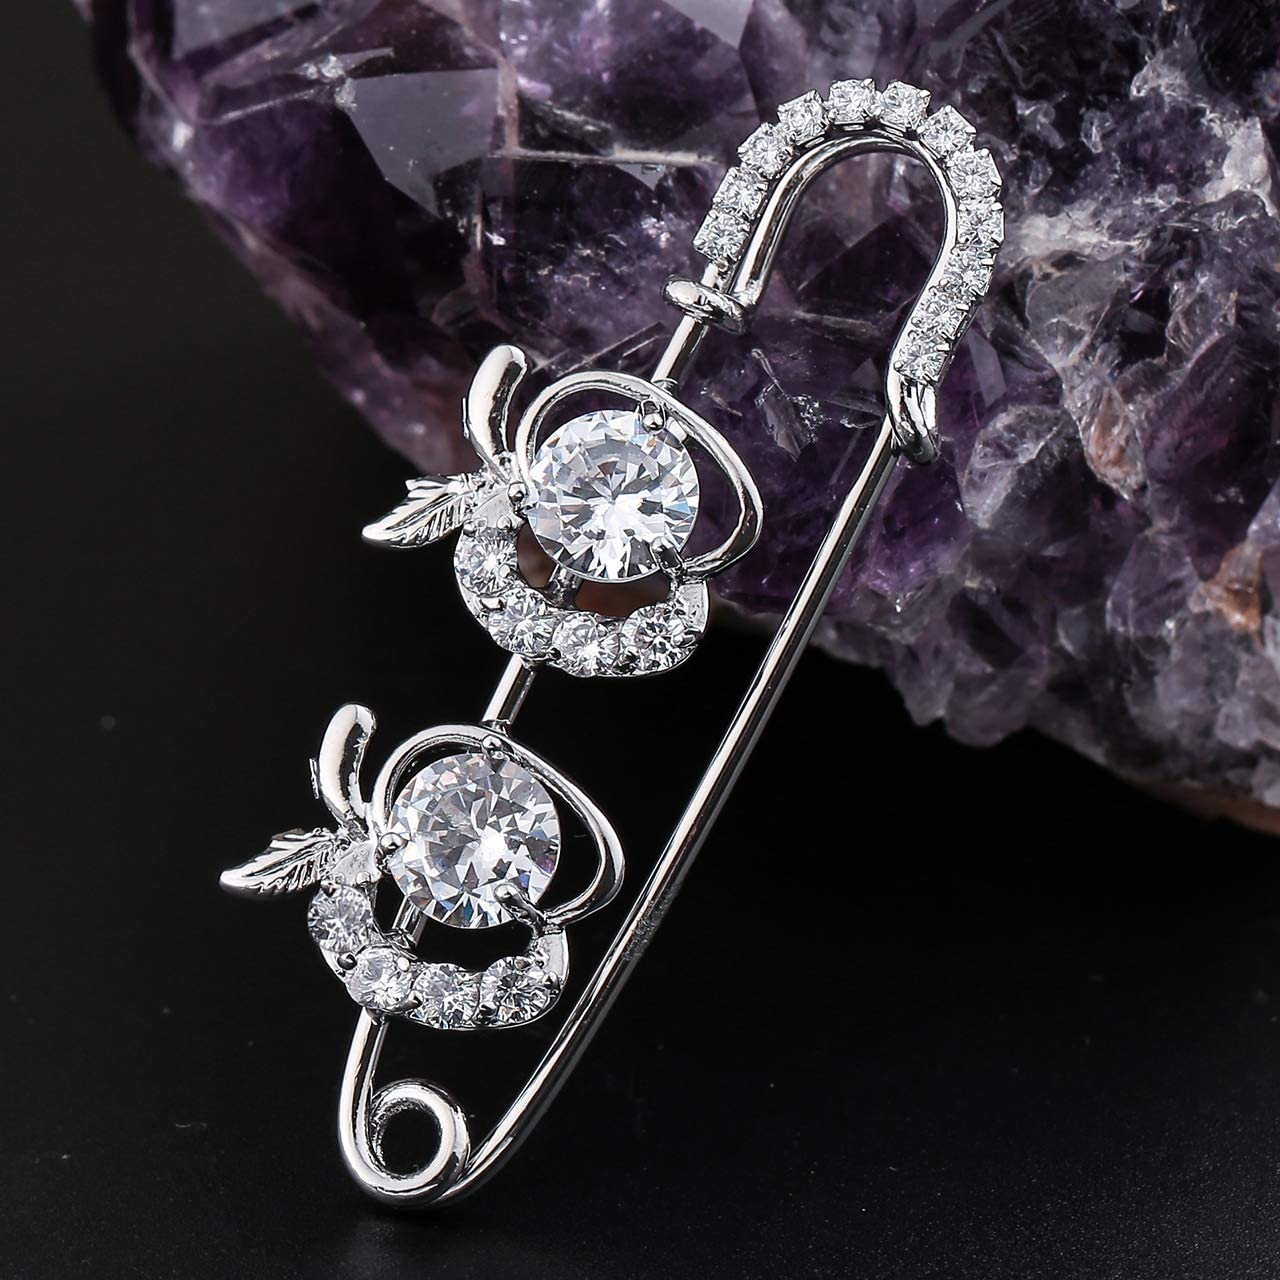 Jovivi 3-5pcs Clear Cubic Zirconia Crystal Floral Feather Safety Pin Brooches Suit Sweater Scarves Scarf Brooch Charm